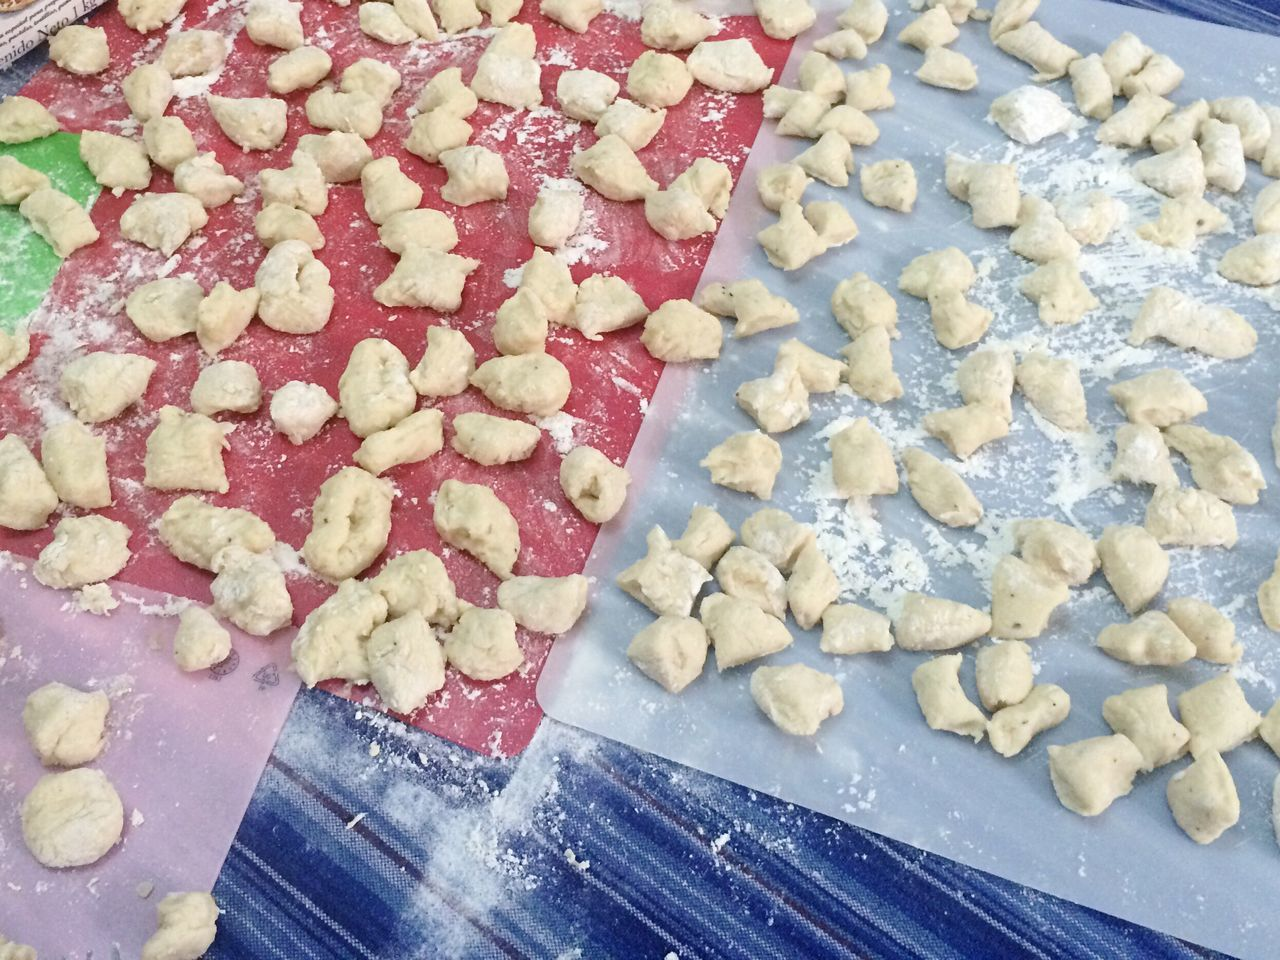 Gnocchi Di Patate Food Food And Drink Freshness Large Group Of Objects Indoors  Preparing Food Slow Food No People ñoquiscaseros ñoquis Gnocci Flour Knead Kneading